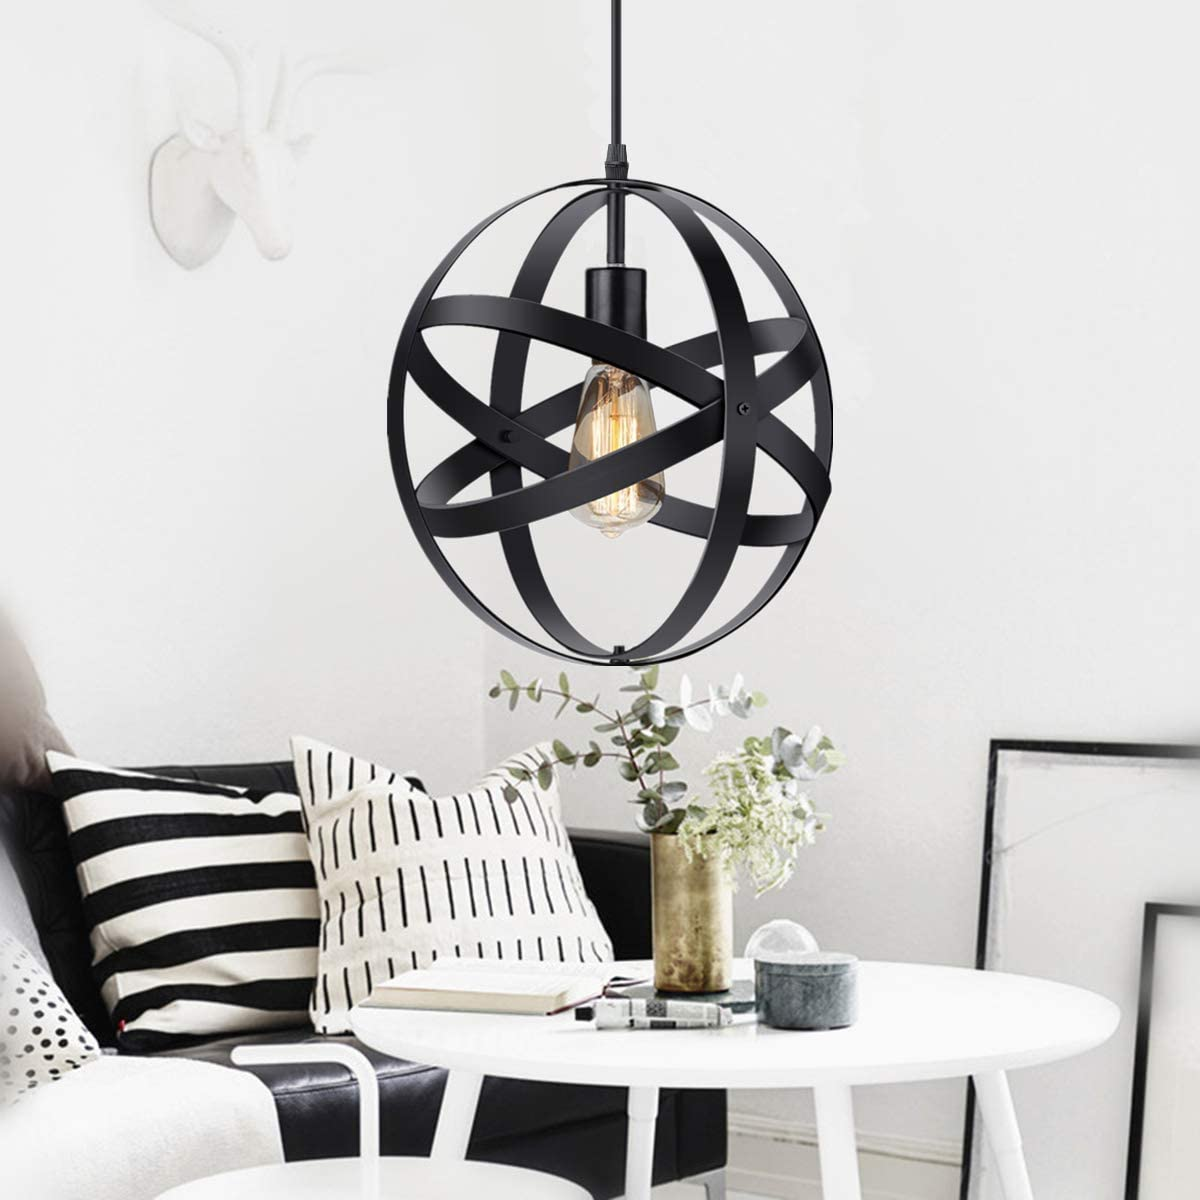 KingSo Industrial Spherical Metal Pendant Light